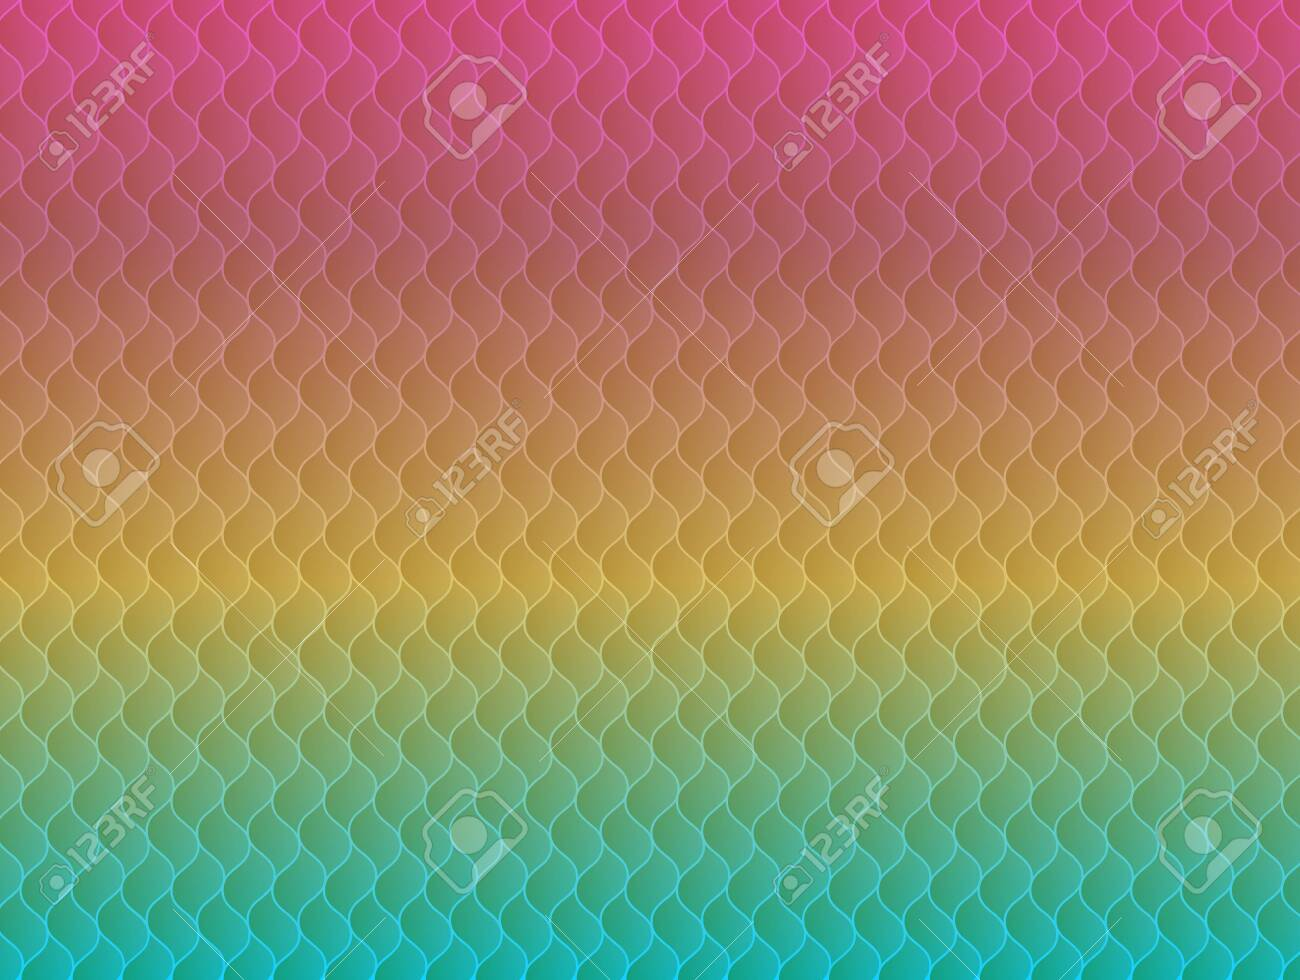 Abstract rainbow seamless pattern with colorful geometric wavy elements. Modern vibrant pride colors texture for background, wallpaper, landing design, presentations - 135539367